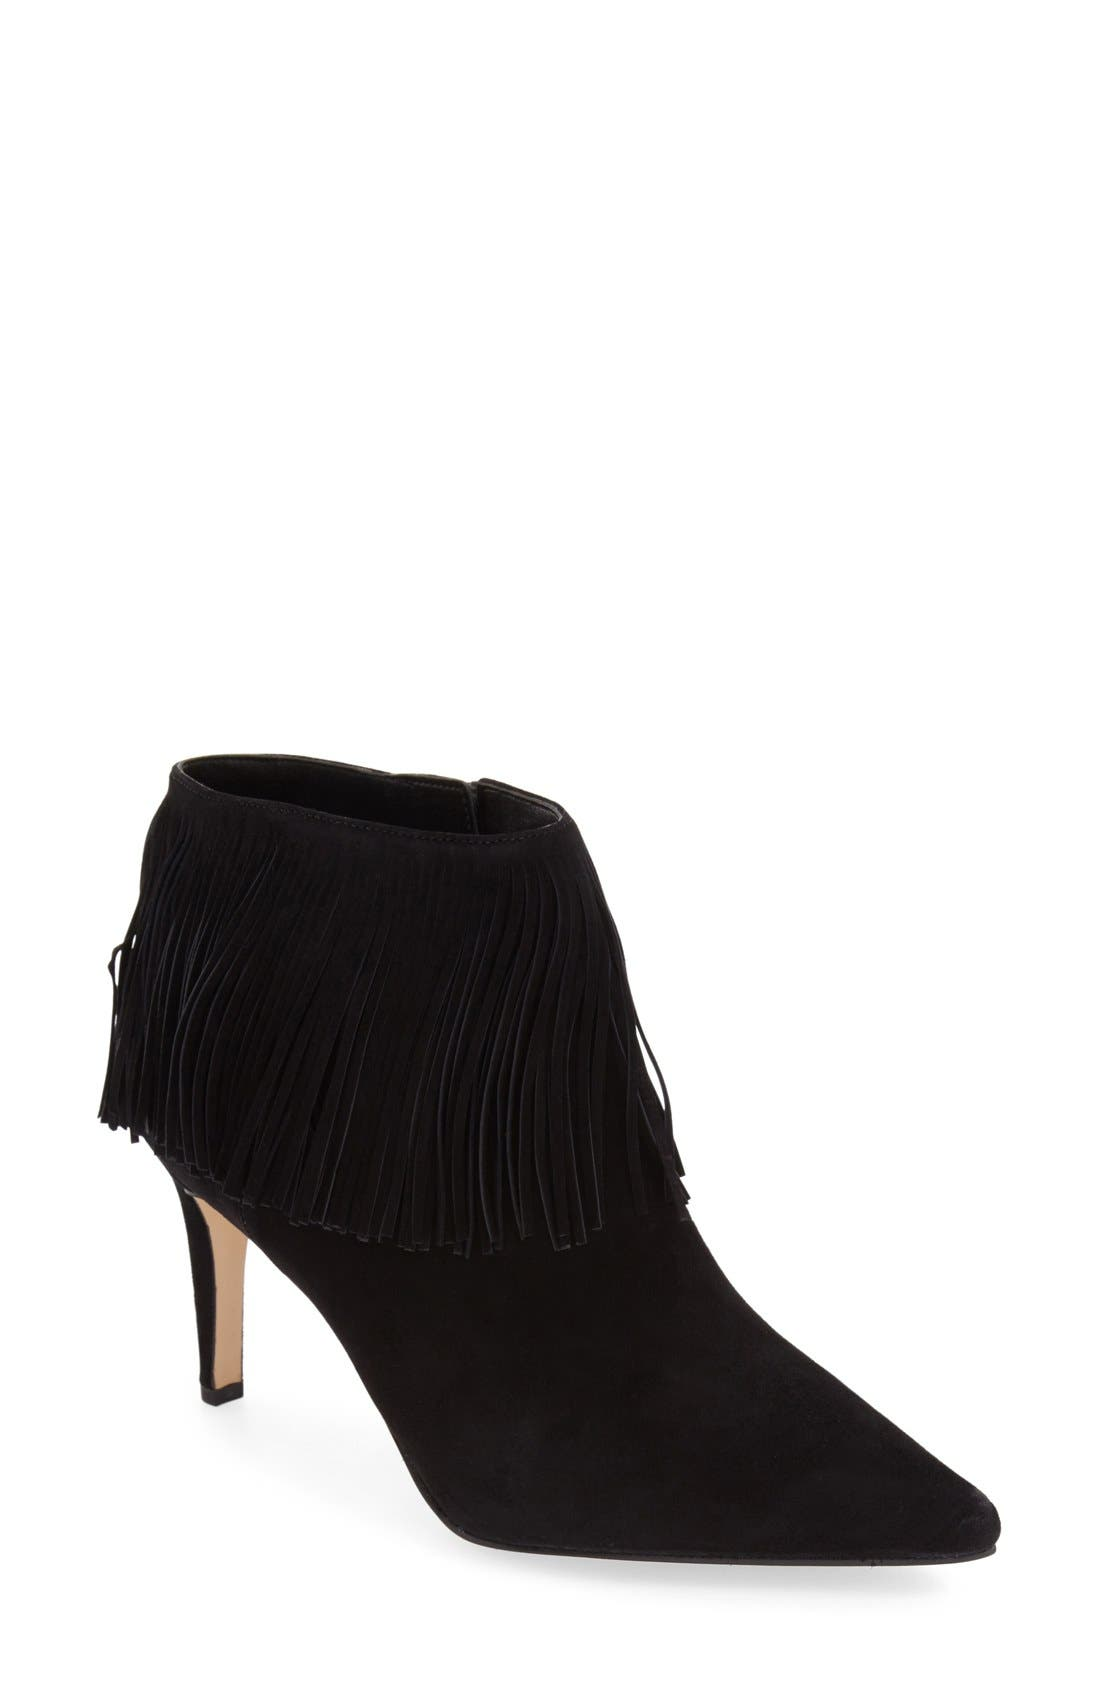 SAM EDELMAN,                             'Kandice' Fringed Suede Pointy Toe Bootie,                             Main thumbnail 1, color,                             002